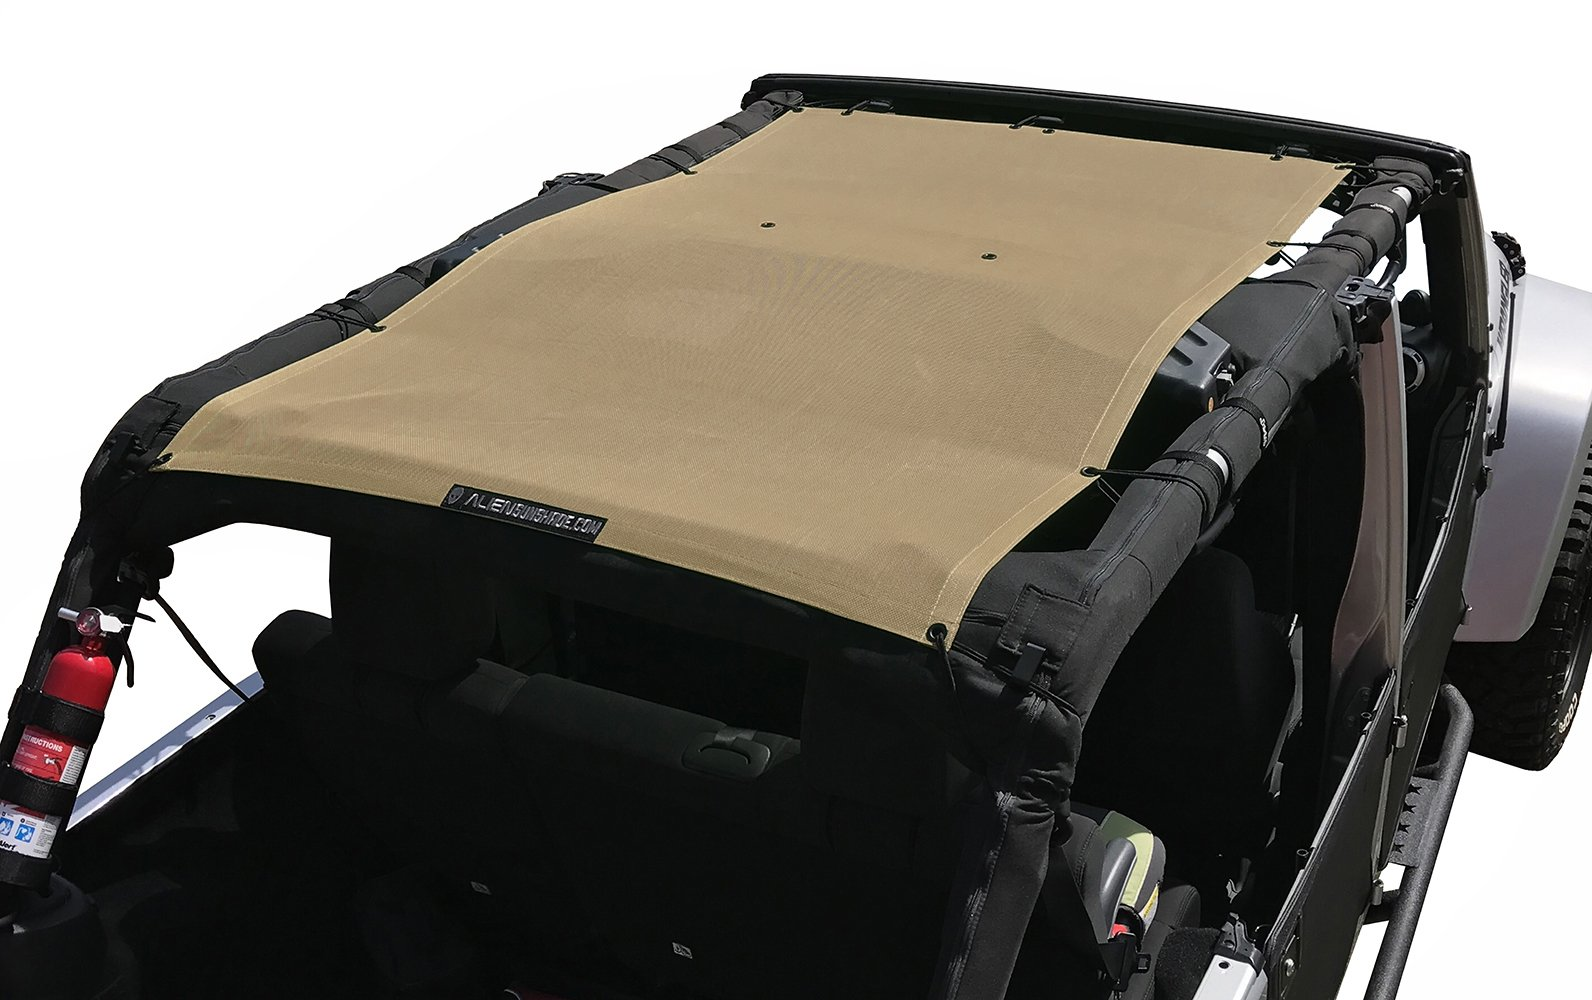 ALIEN SUNSHADE Jeep Wrangler Mesh Shade Top Cover with 10 Year Warranty Provides UV Protection for Your 4-Door JKU (2007-2017) (Tan)